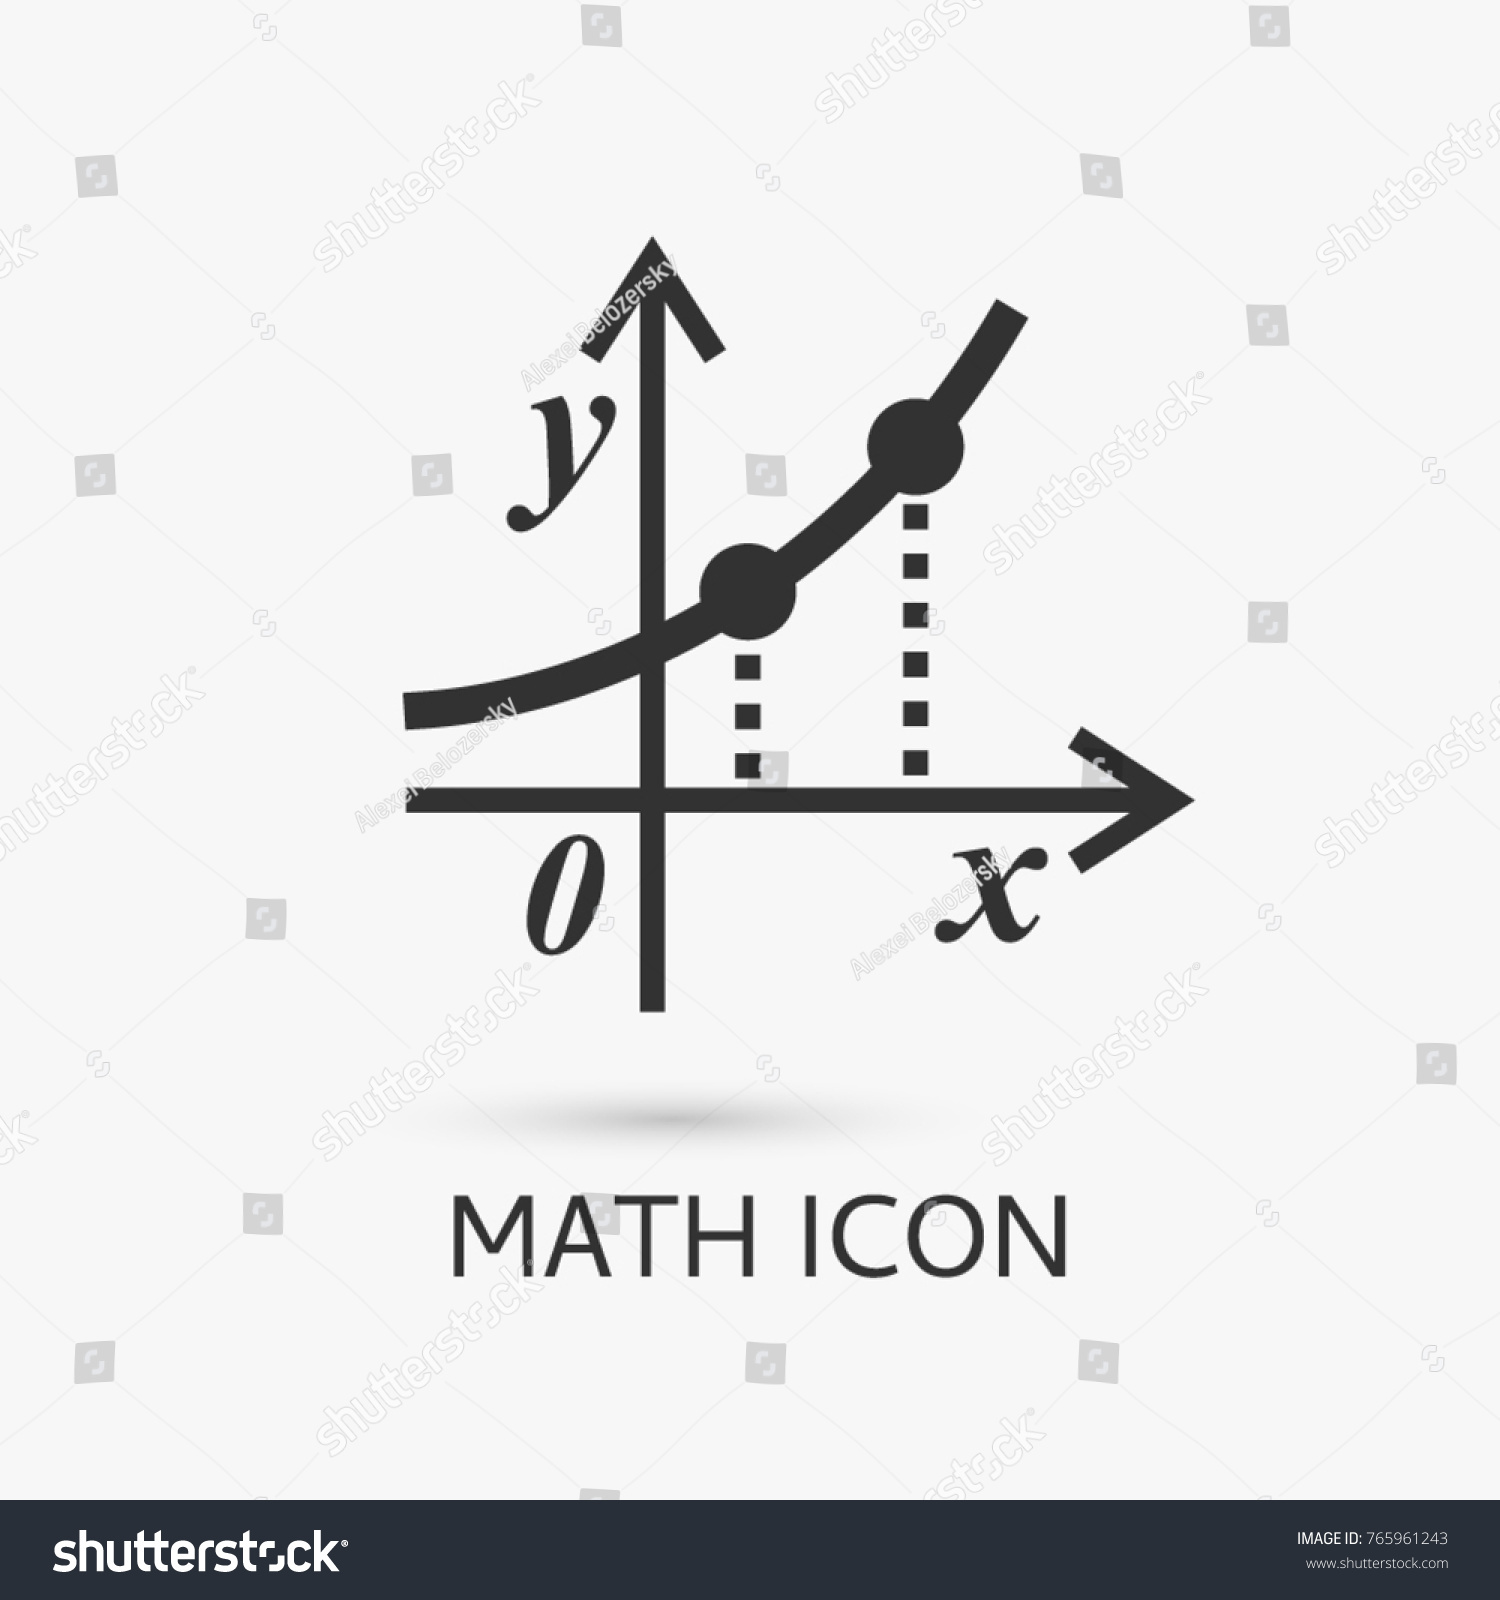 Math equation icon isolated modern flat stock vector 765961243 math equation icon isolated modern flat pictogram business marketing internet concept buycottarizona Image collections